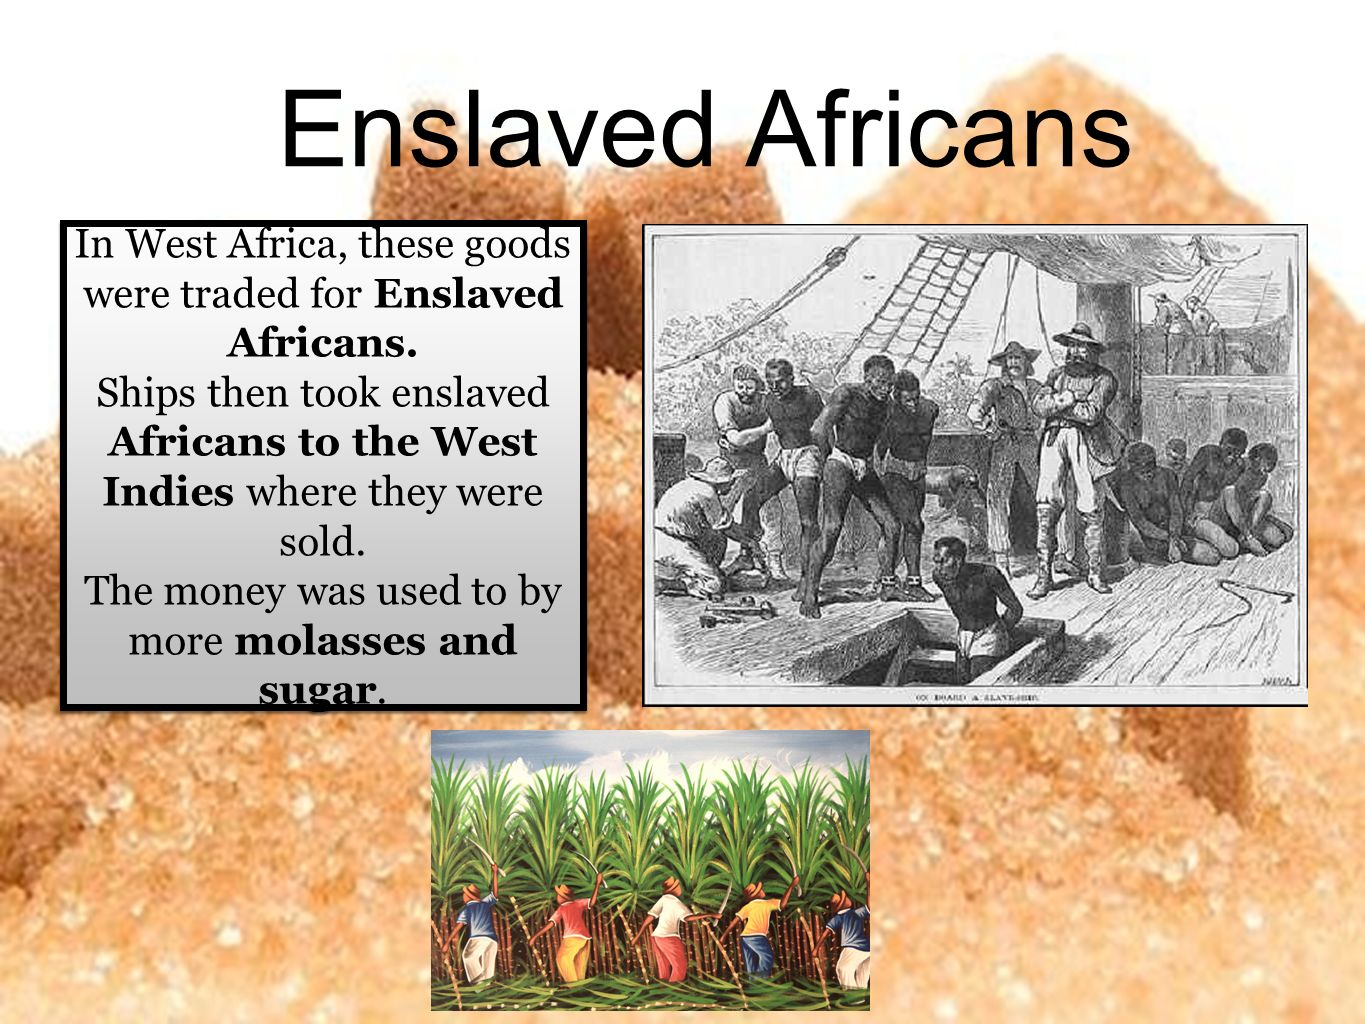 why was it difficult for the enslaved africans to practice their culture on the plantation The practice was later adopted by africans themselves however, until europeans appeared in africa in the 15th century, african slavery was a different and much smaller-scale institution under the african system, some slaves served as soldiers or craftspeople, and most were treated well and worked as farmers.